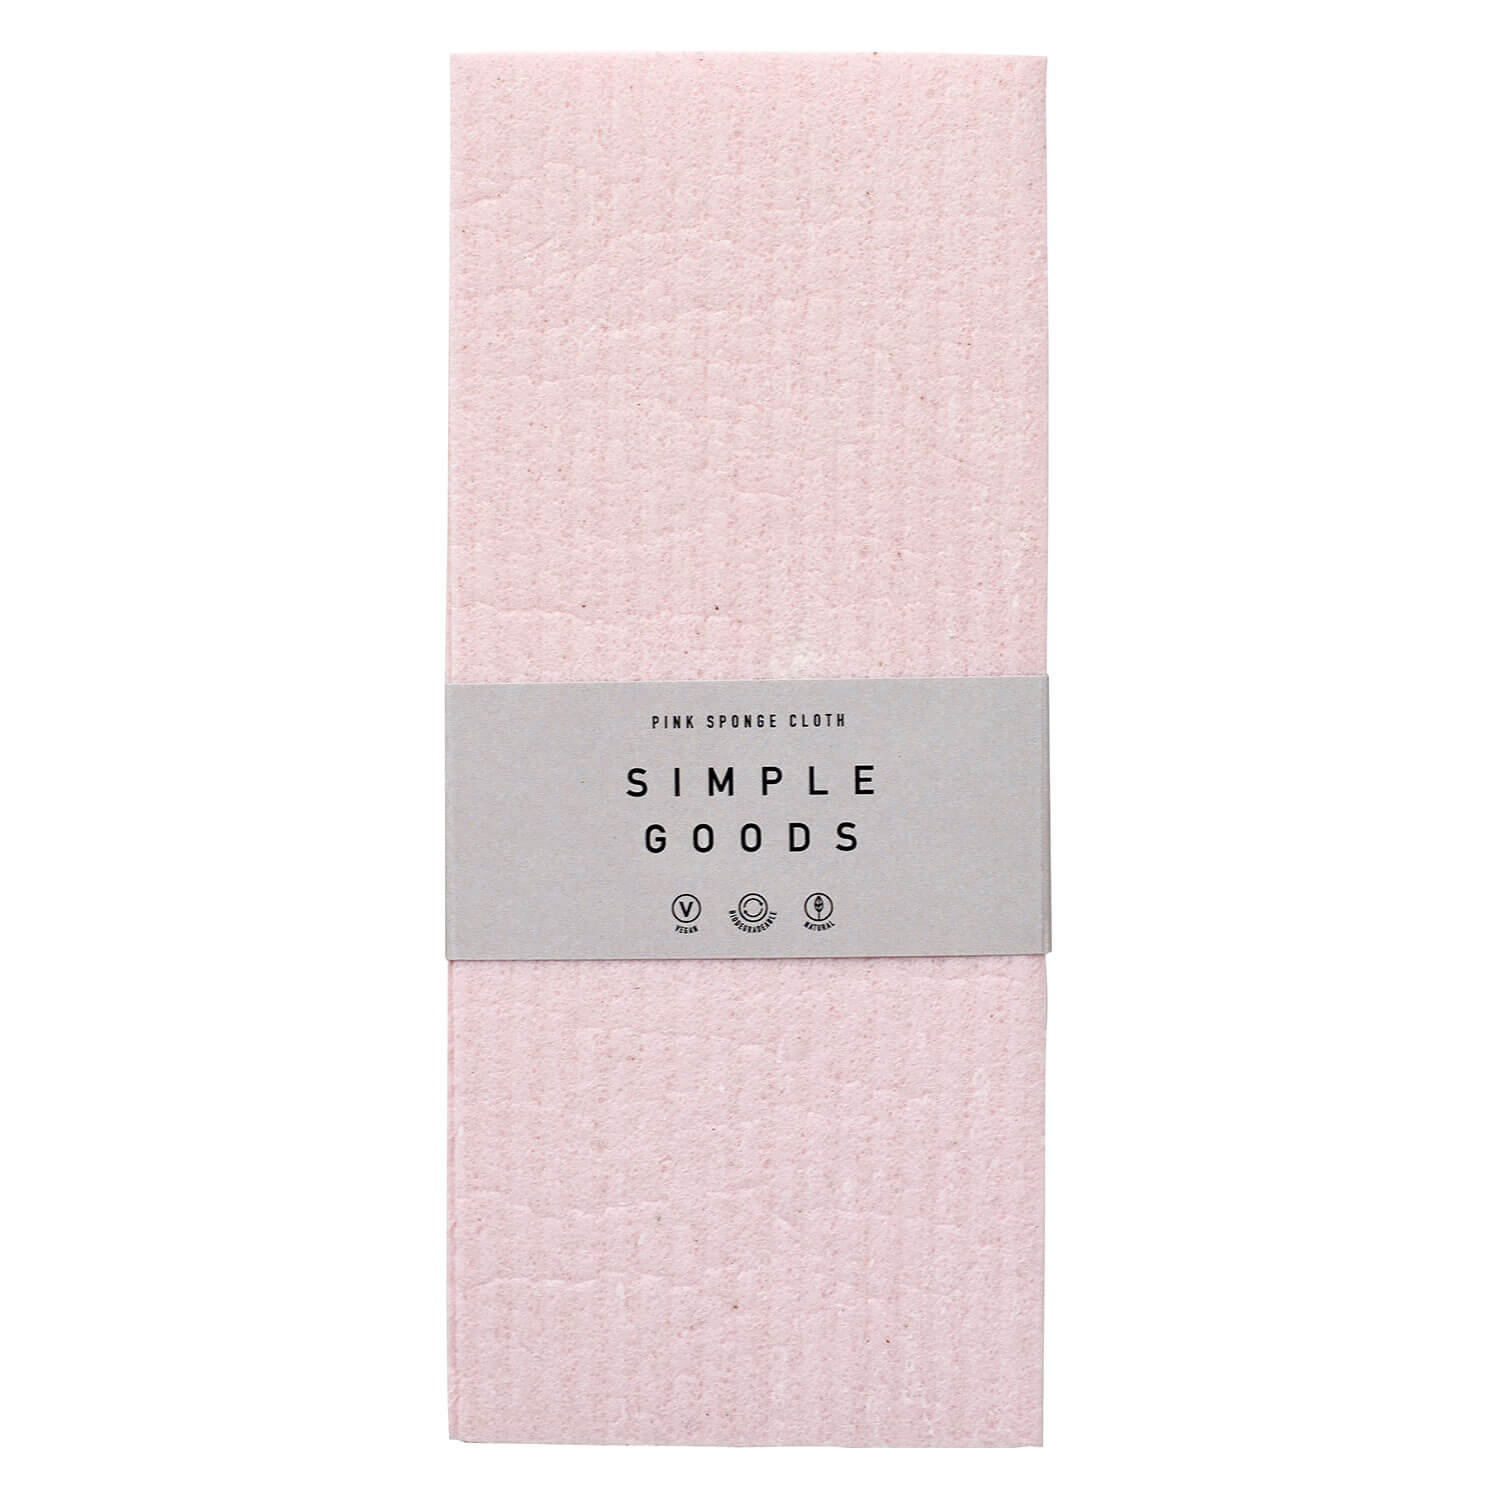 SIMPLE GOODS - Sponge Cloth Pink